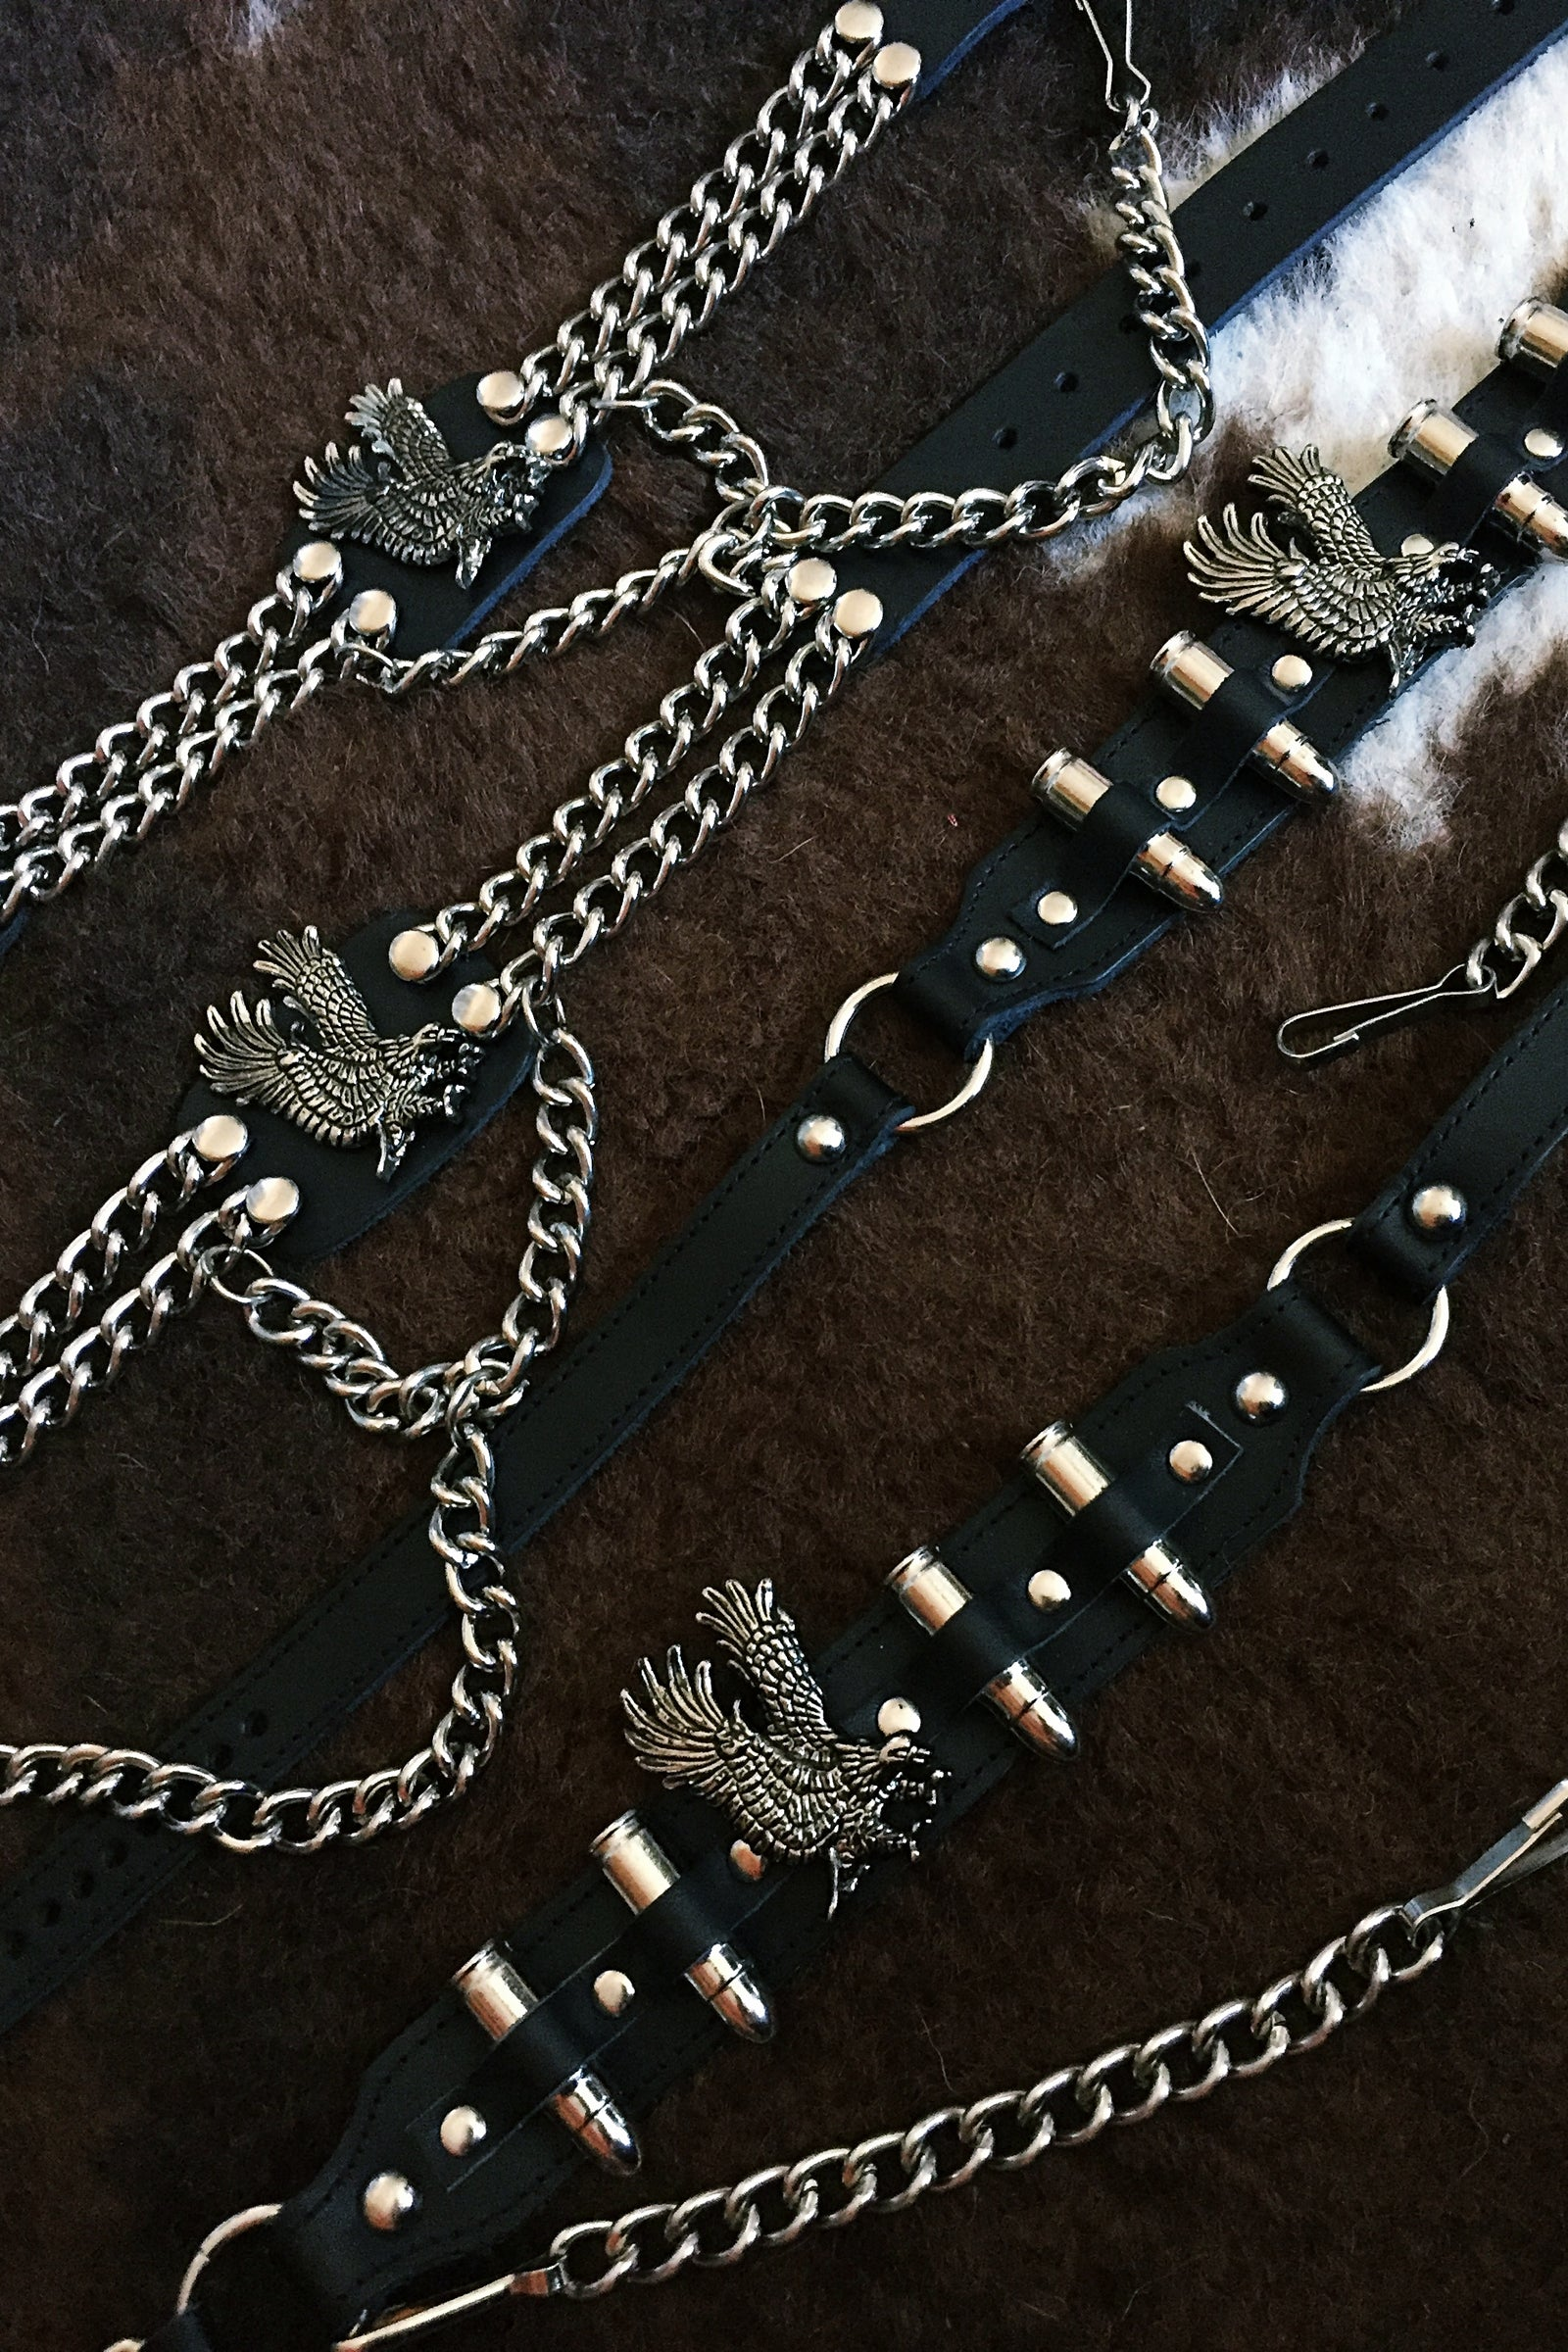 Eagles' Flight Boot Chains